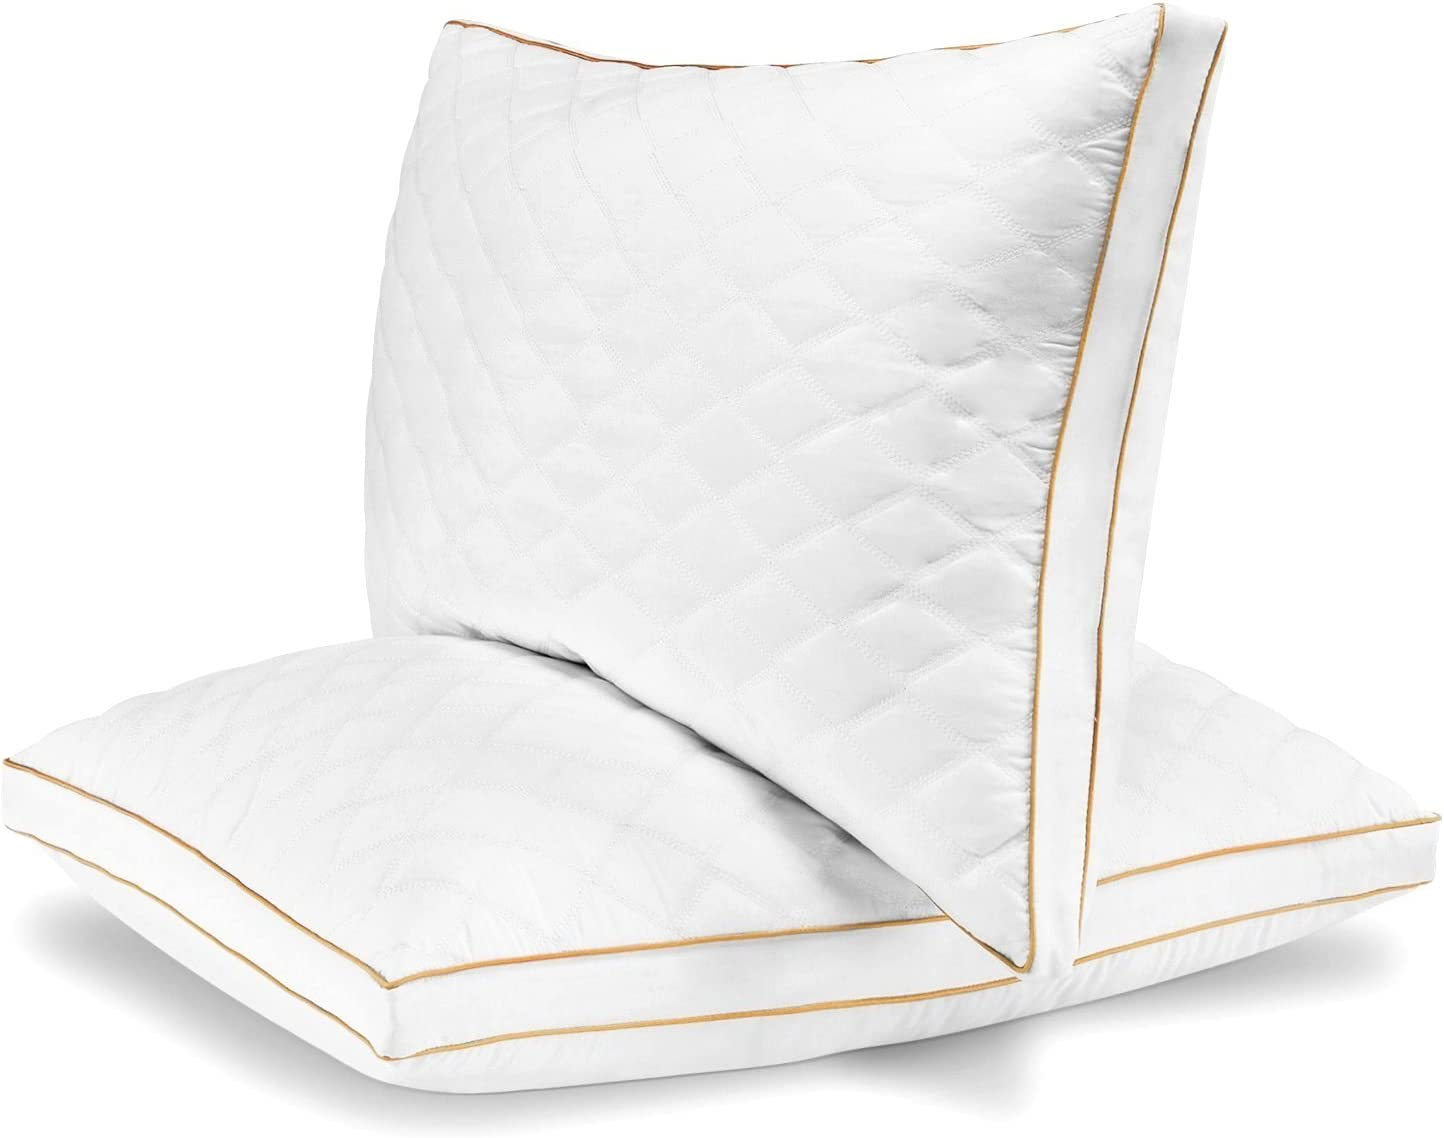 Italian Luxury Quilted Pillow King Set Of 2 Home Kitchen Amazon Com